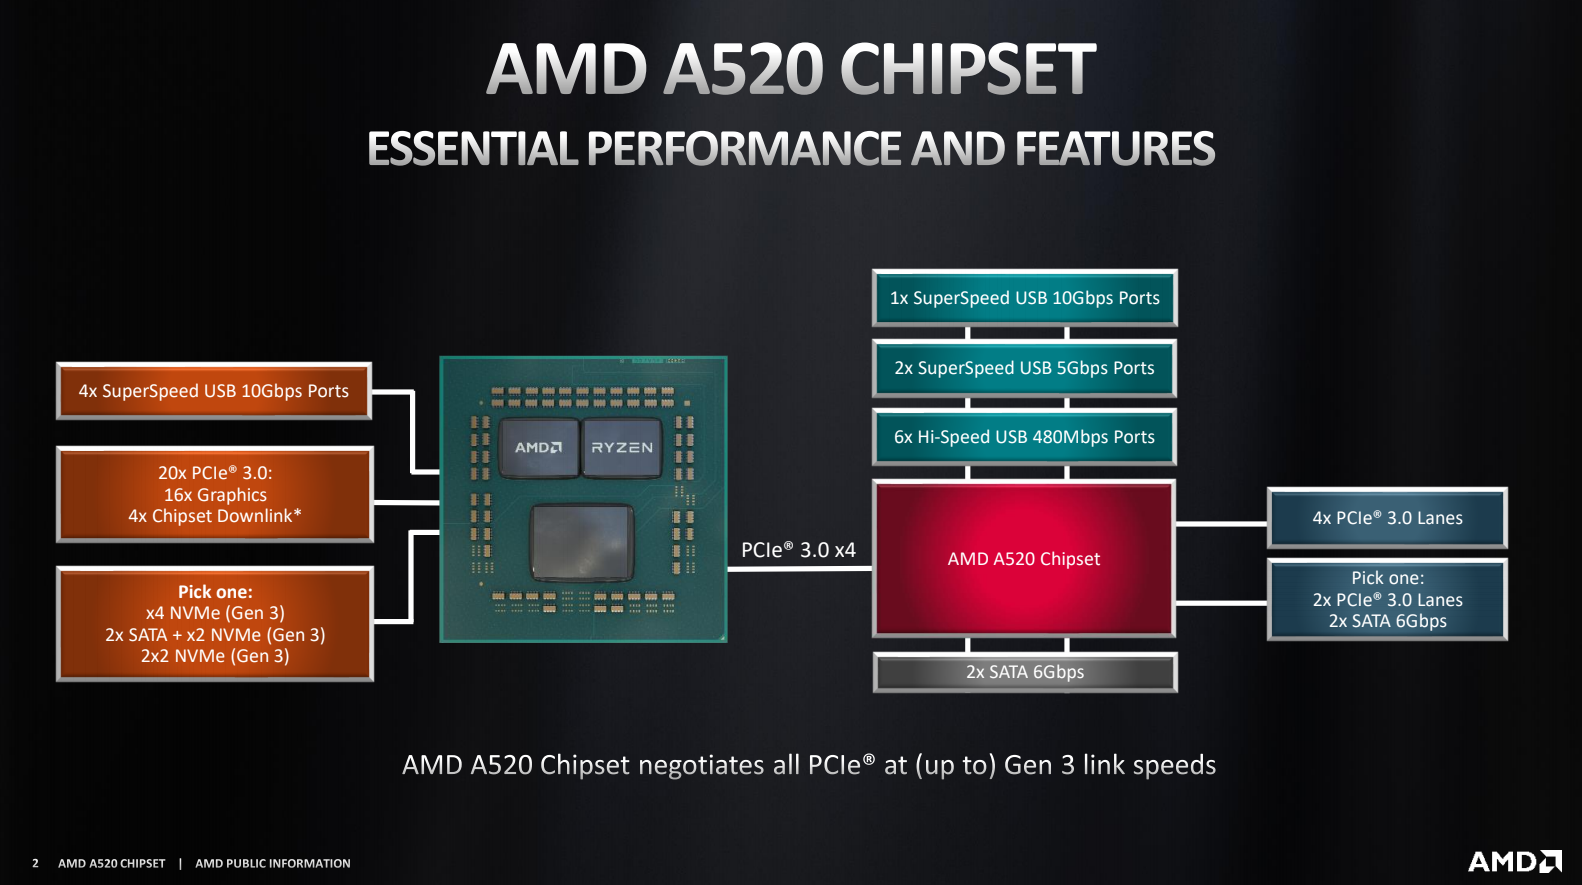 amd a520 chipset block diagram